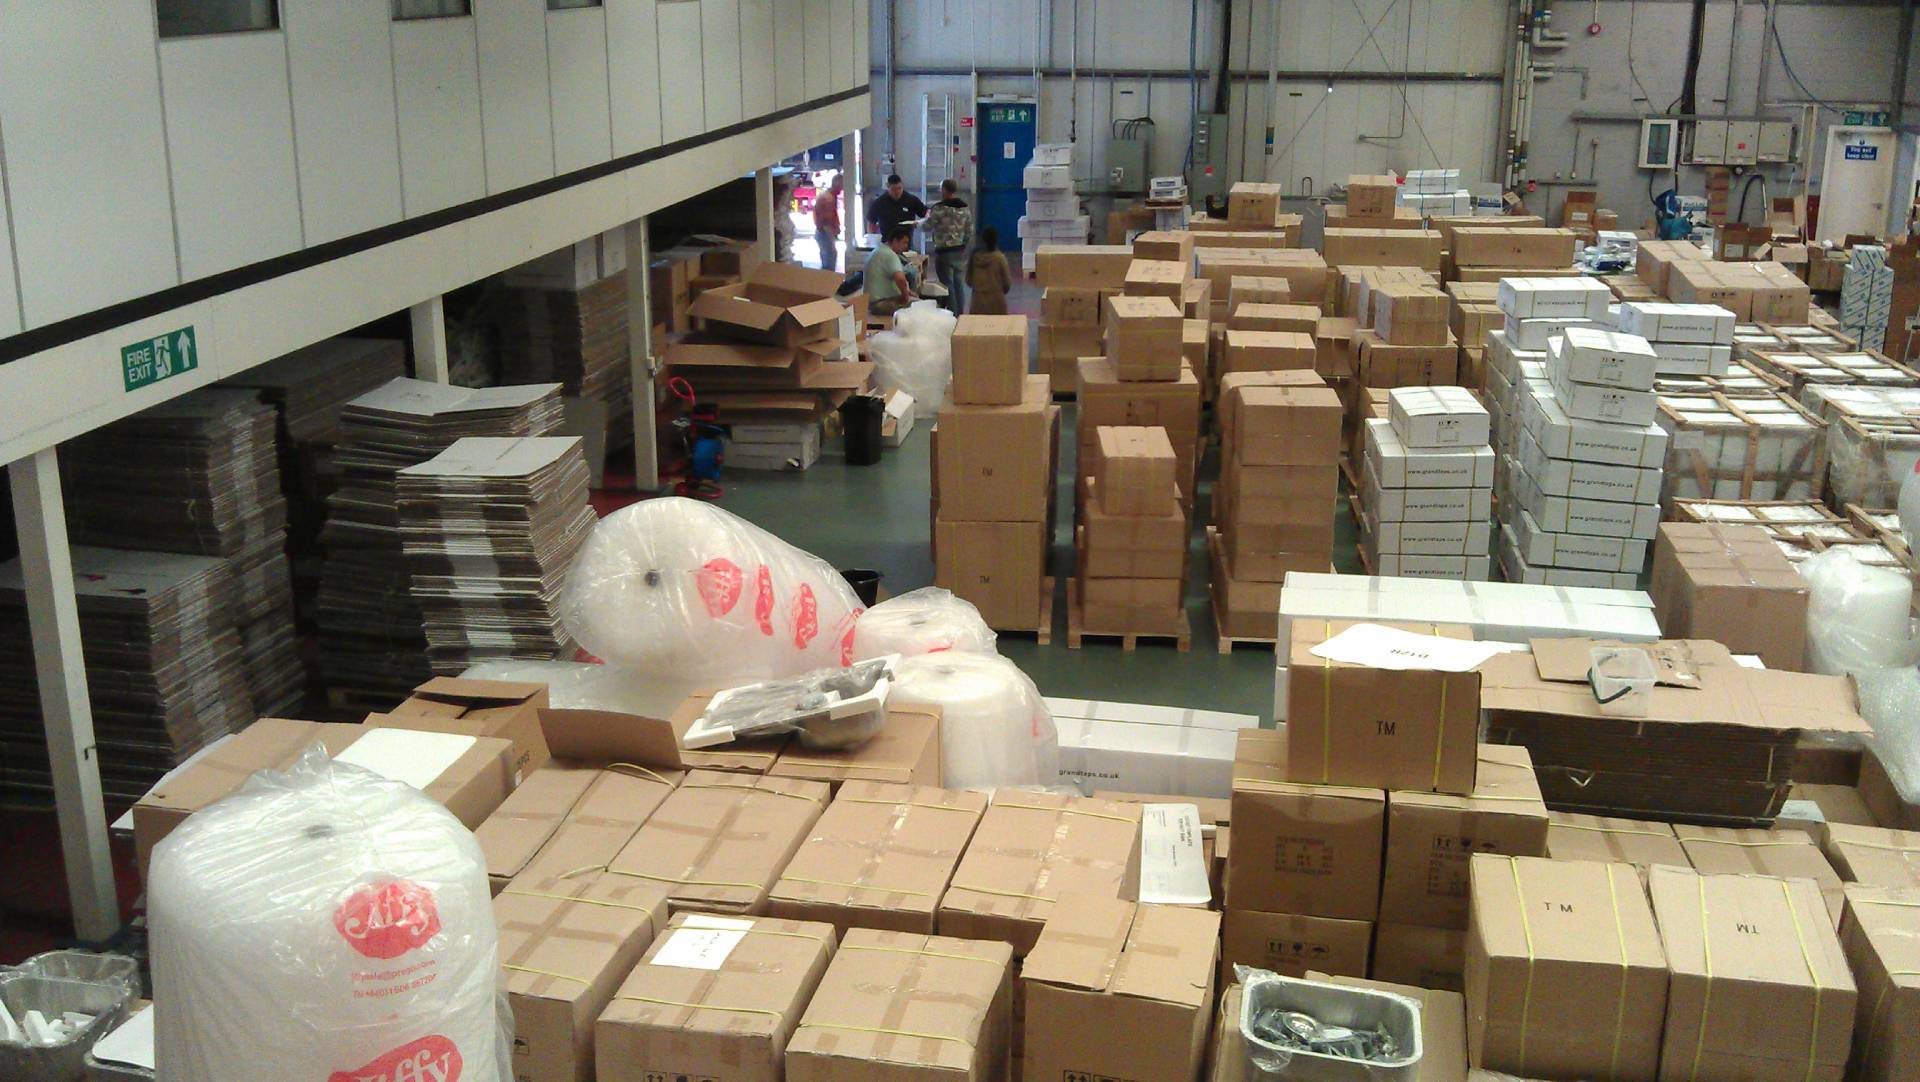 Photo Of Grand Taps And Tiles Warehouse - Plenty stock on hand to keep customers happy